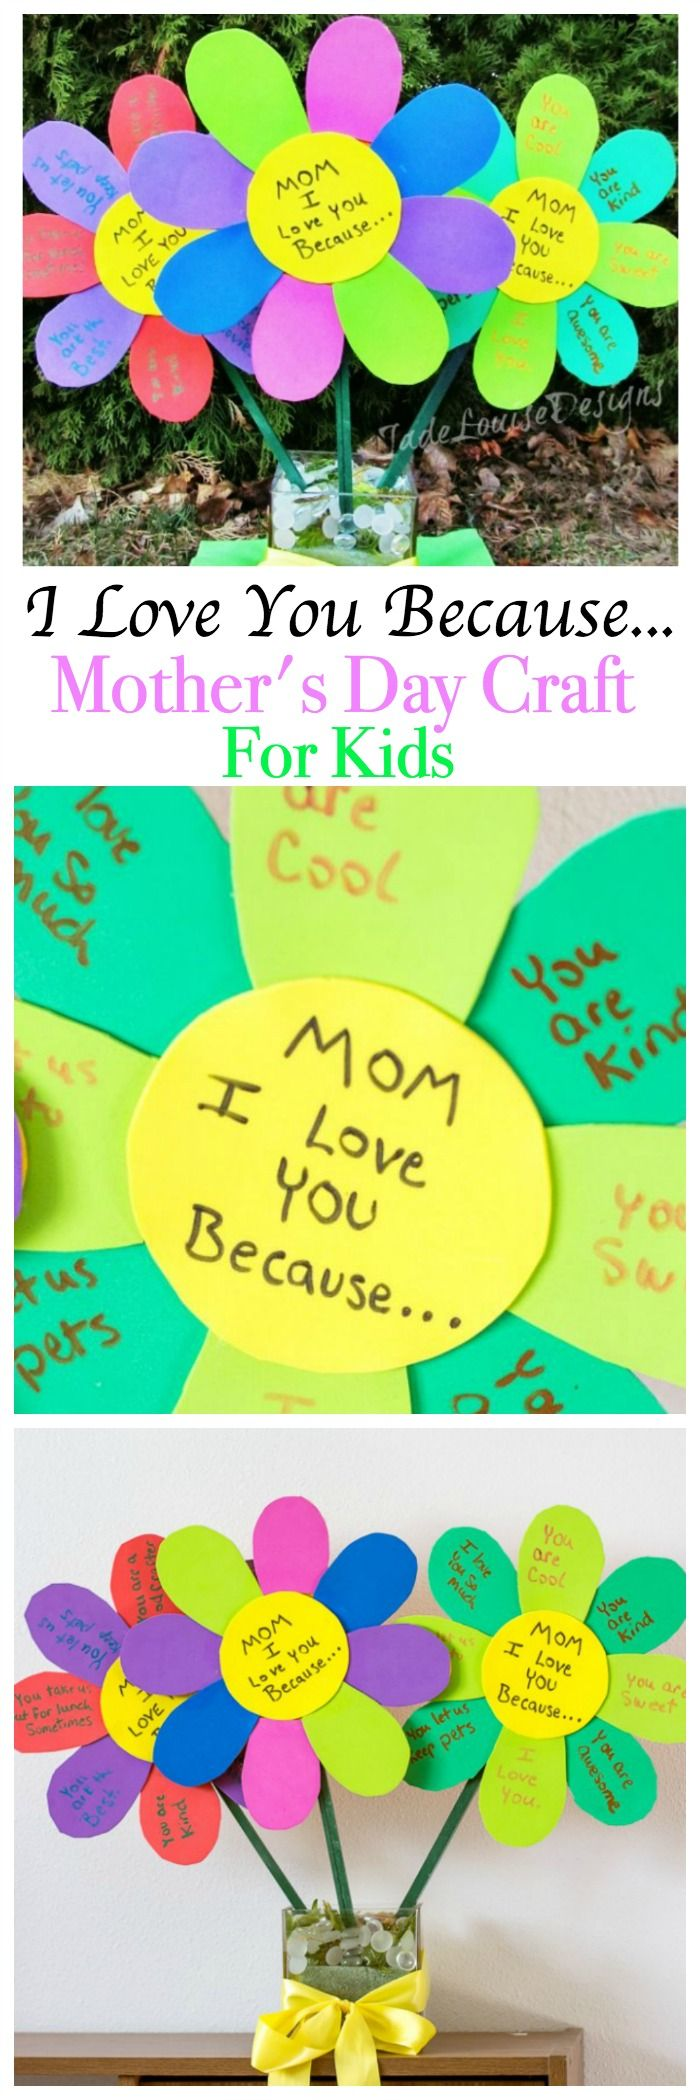 I recently asked a lot of other moms what they really want for Mothers Days. One of the most common answers was a gift made by their kids. This ranged anywhere from simple hand prints, written letters or more elaborate crafts. But either way, as long as it was made by their kids for their...Read More »